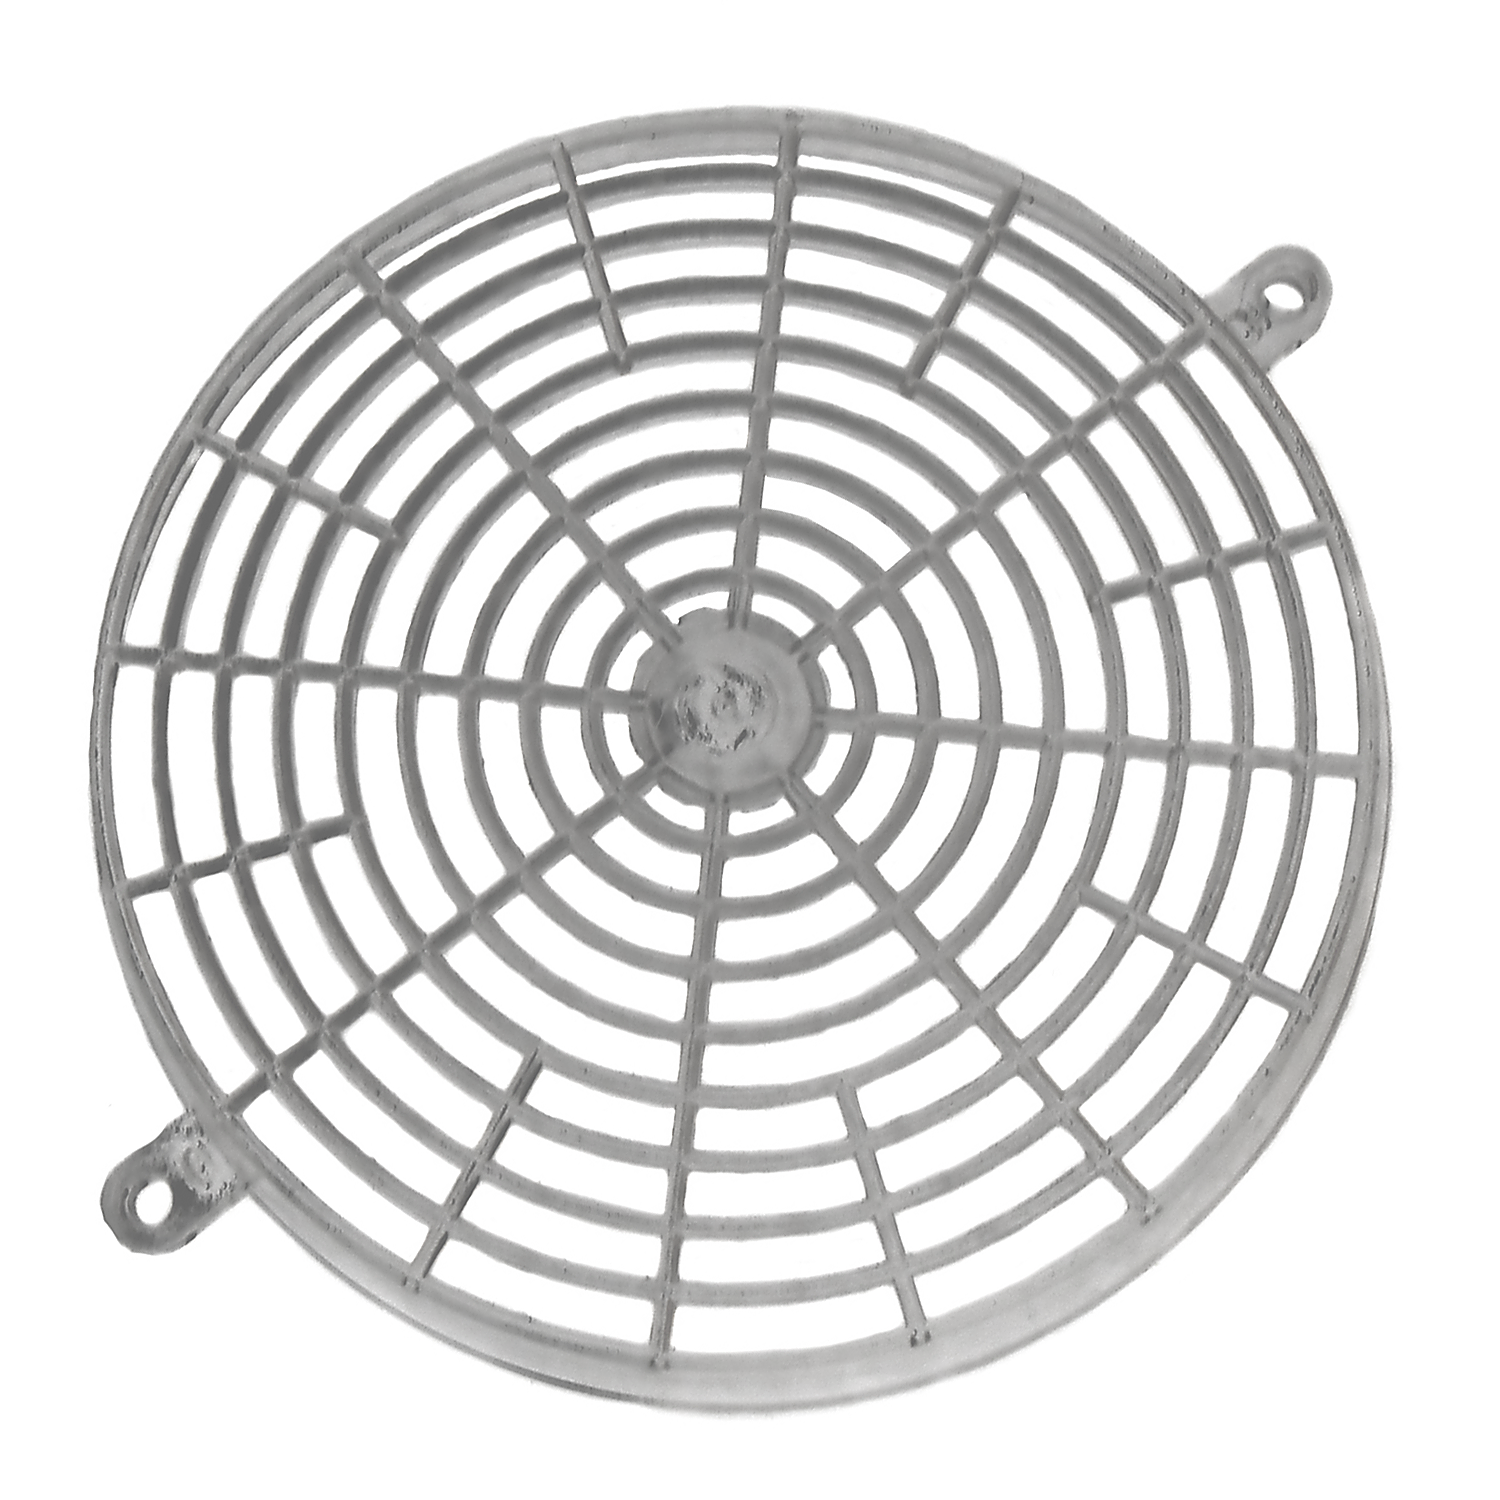 00-0005-0116 | Plastic Fan Blade Cover for Thelin Pellet Stoves Gnome & Parlour 00-0005-0116